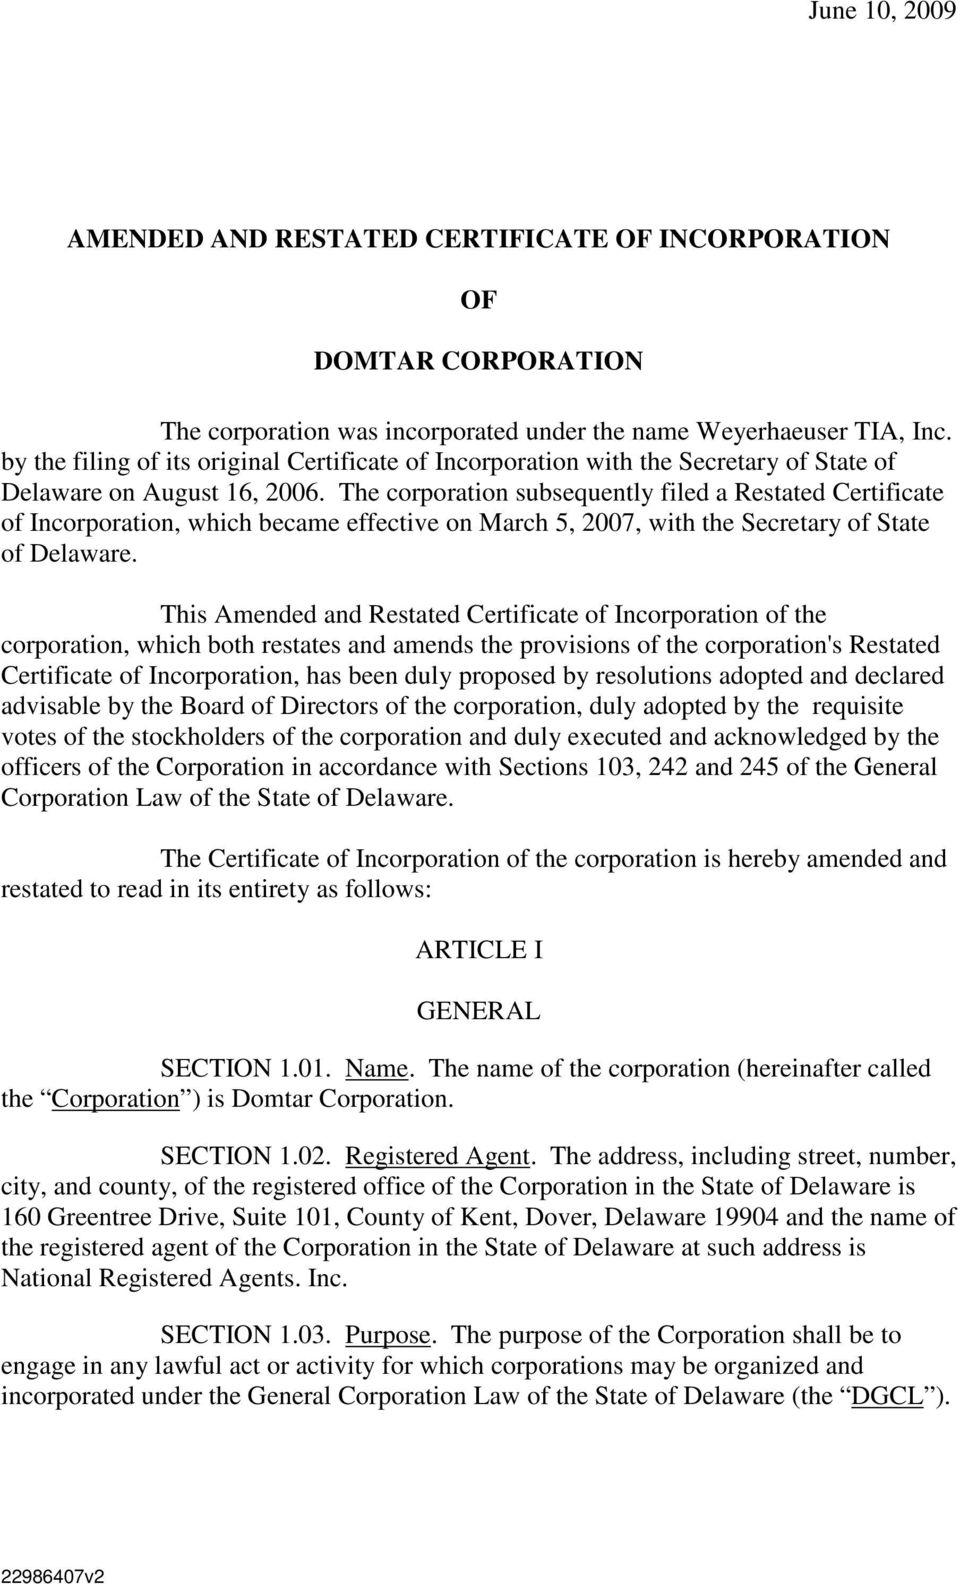 The corporation subsequently filed a Restated Certificate of Incorporation, which became effective on March 5, 2007, with the Secretary of State of Delaware.